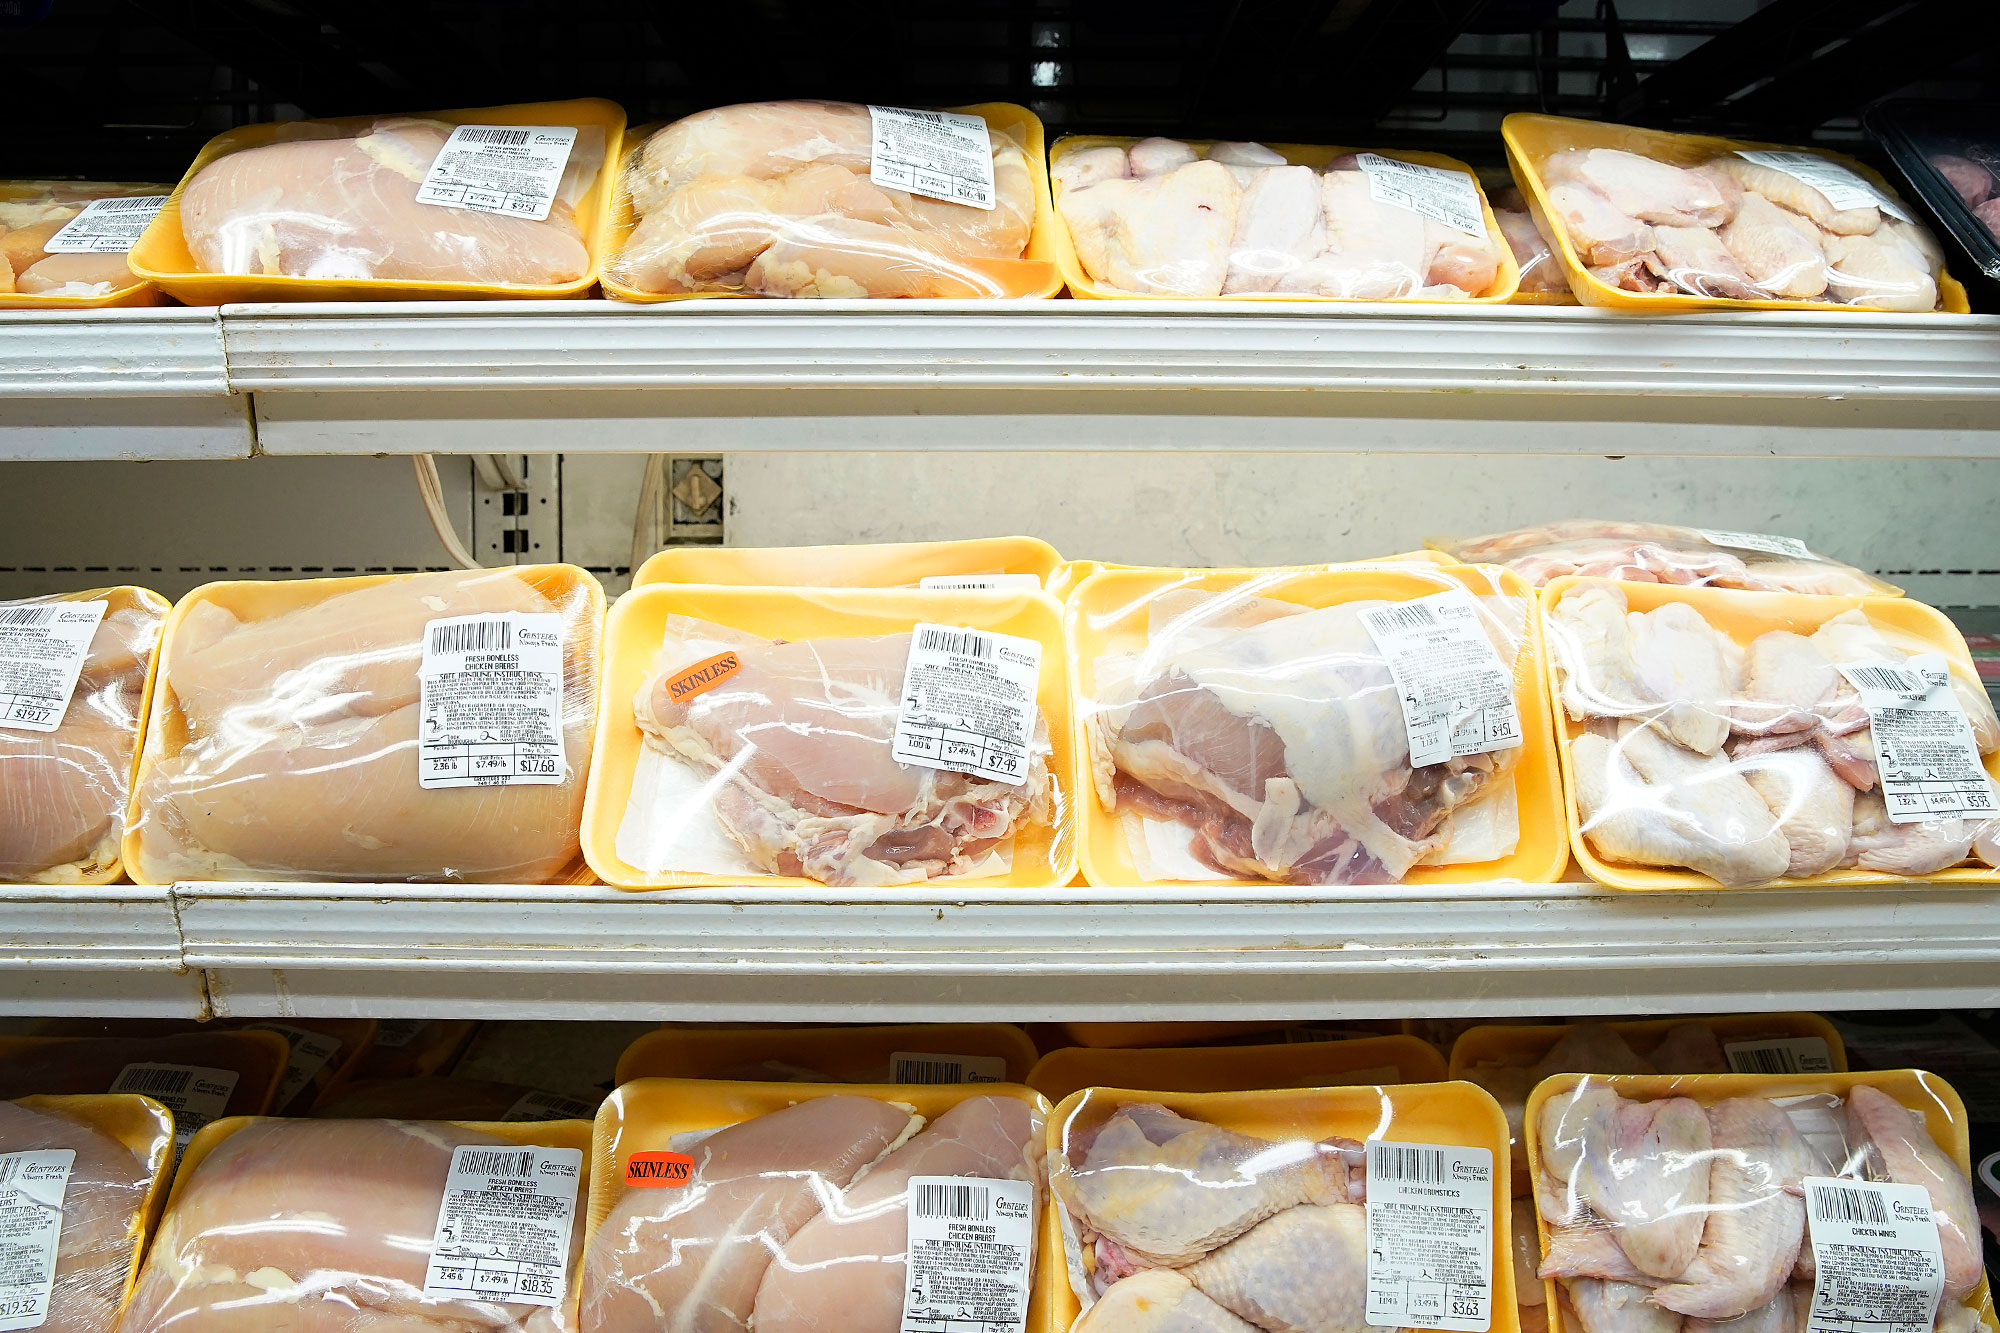 Poultry packages are seen in a supermarket refrigerator in